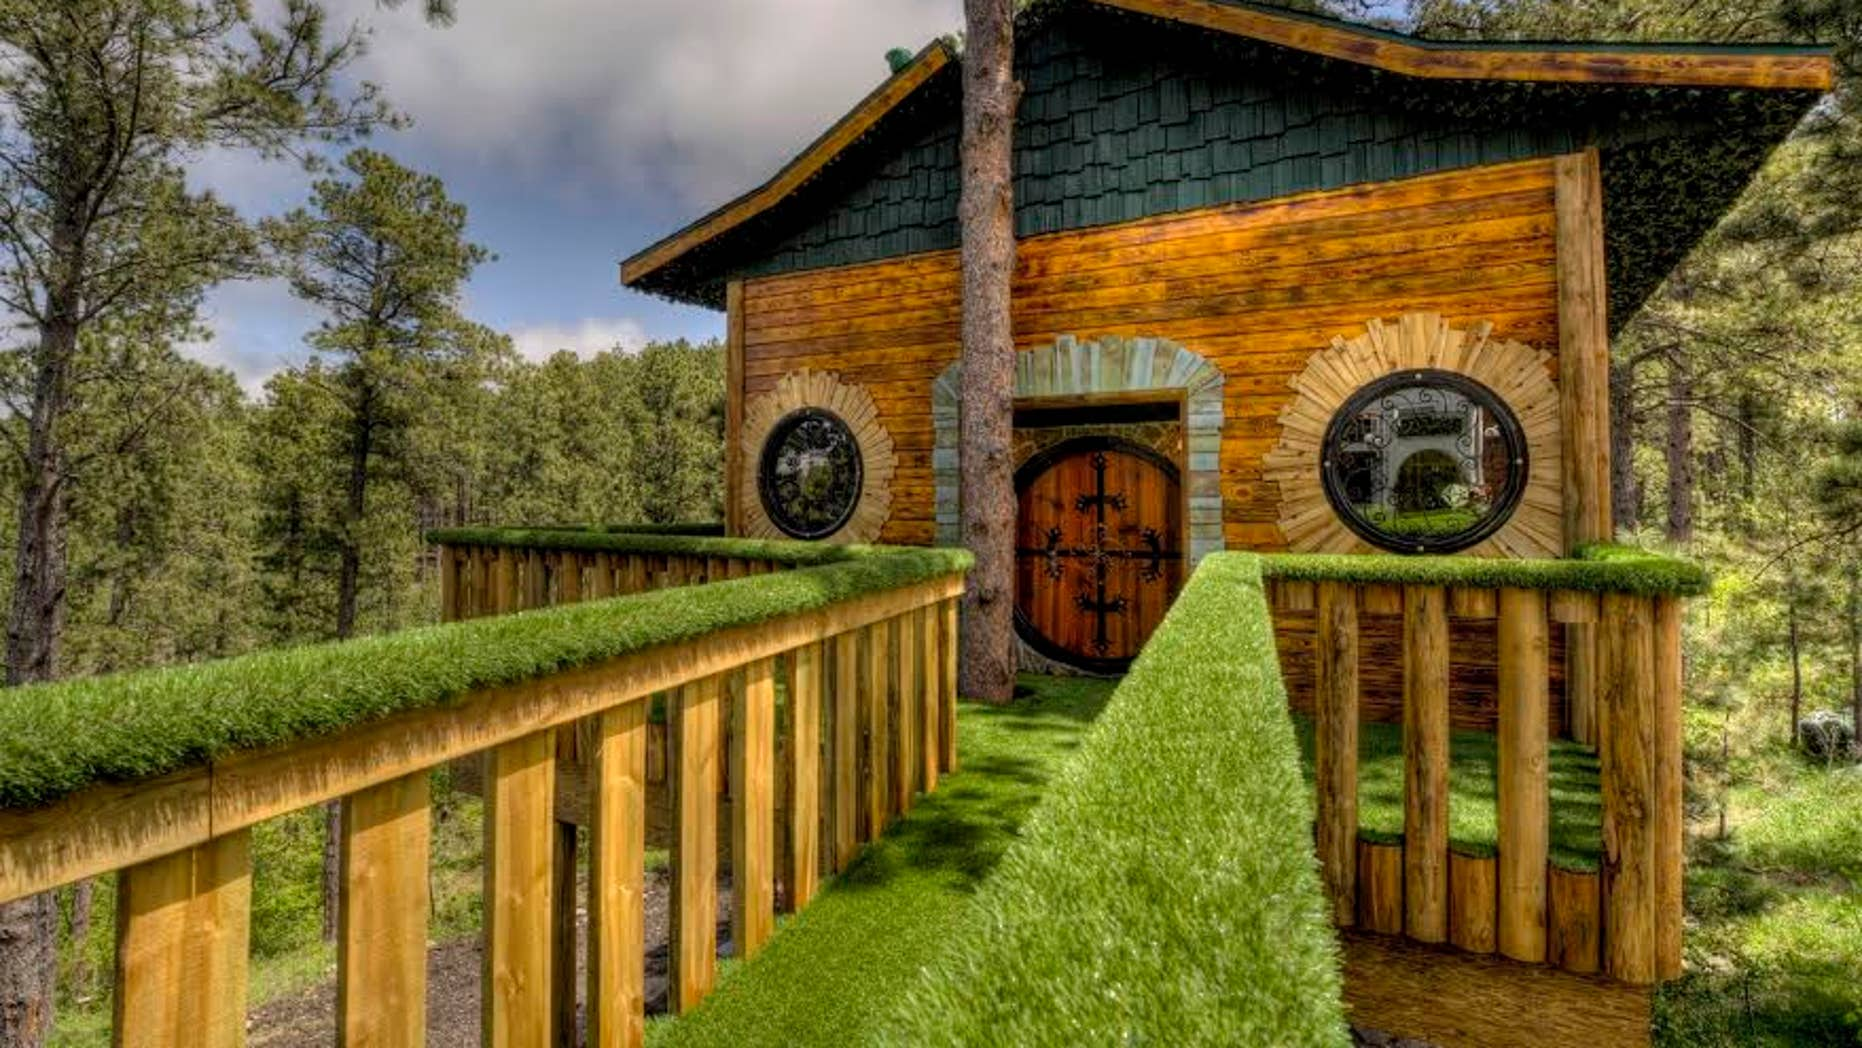 A walkway connects the original property to the Hobbit-themed treehouse.